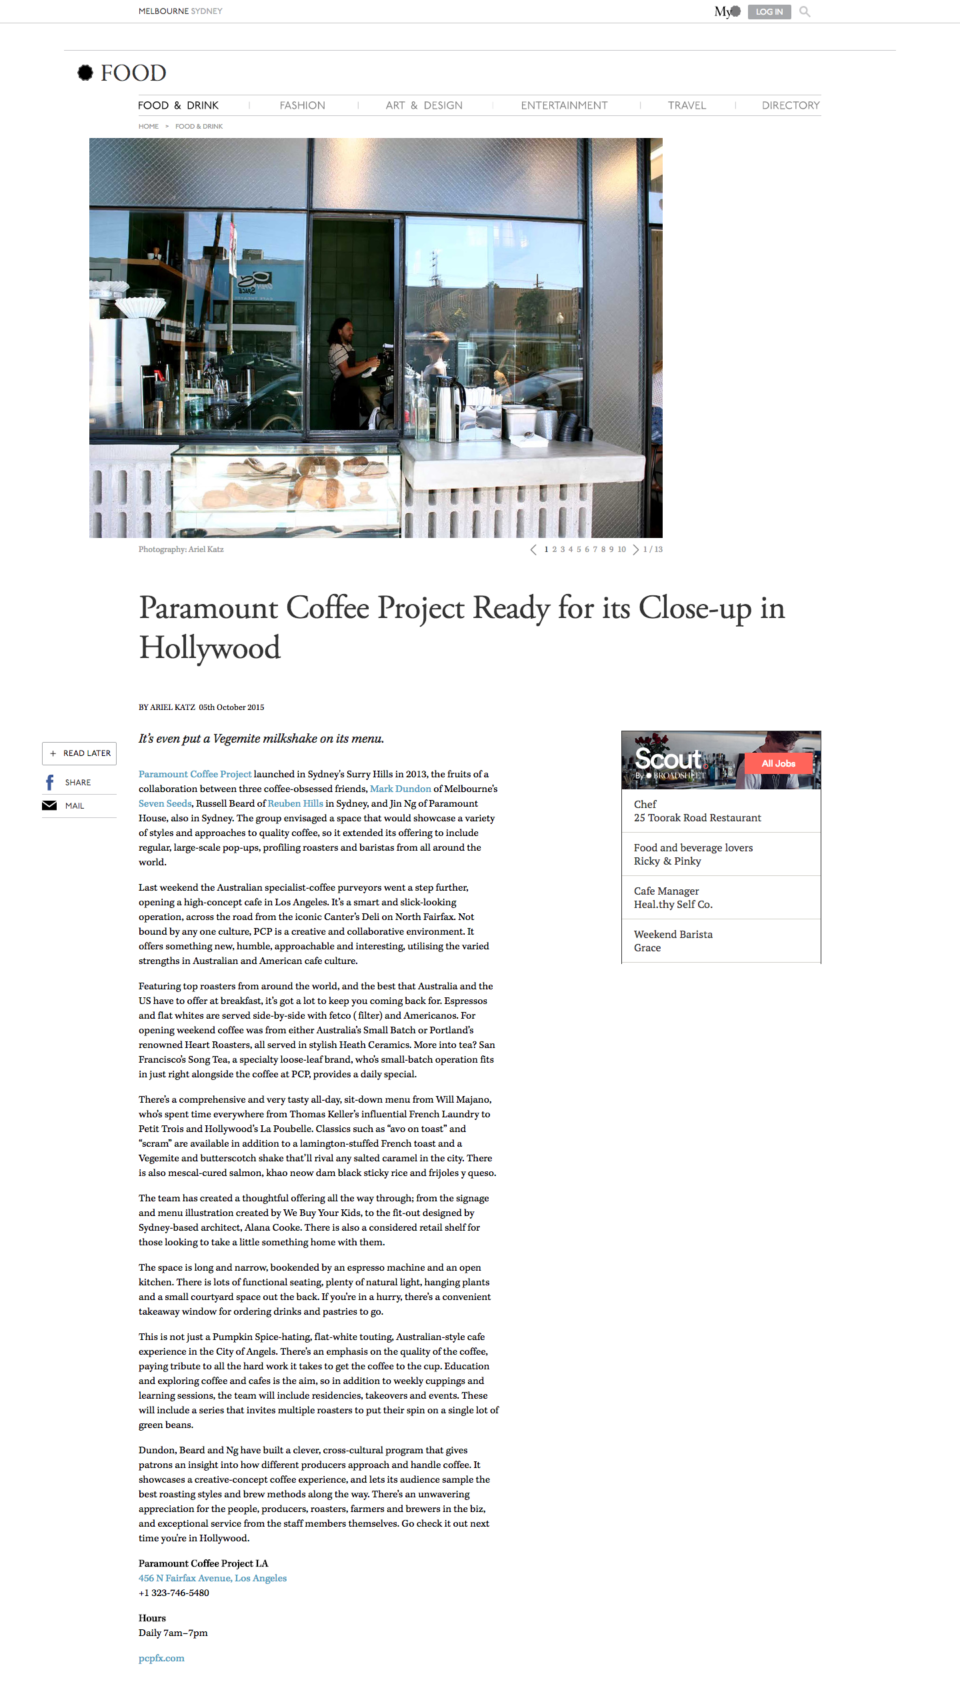 screencapture-broadsheet-au-melbourne-food-and-drink-article-paramount-coffee-project-ready-its-close-hollywood-1471989323788